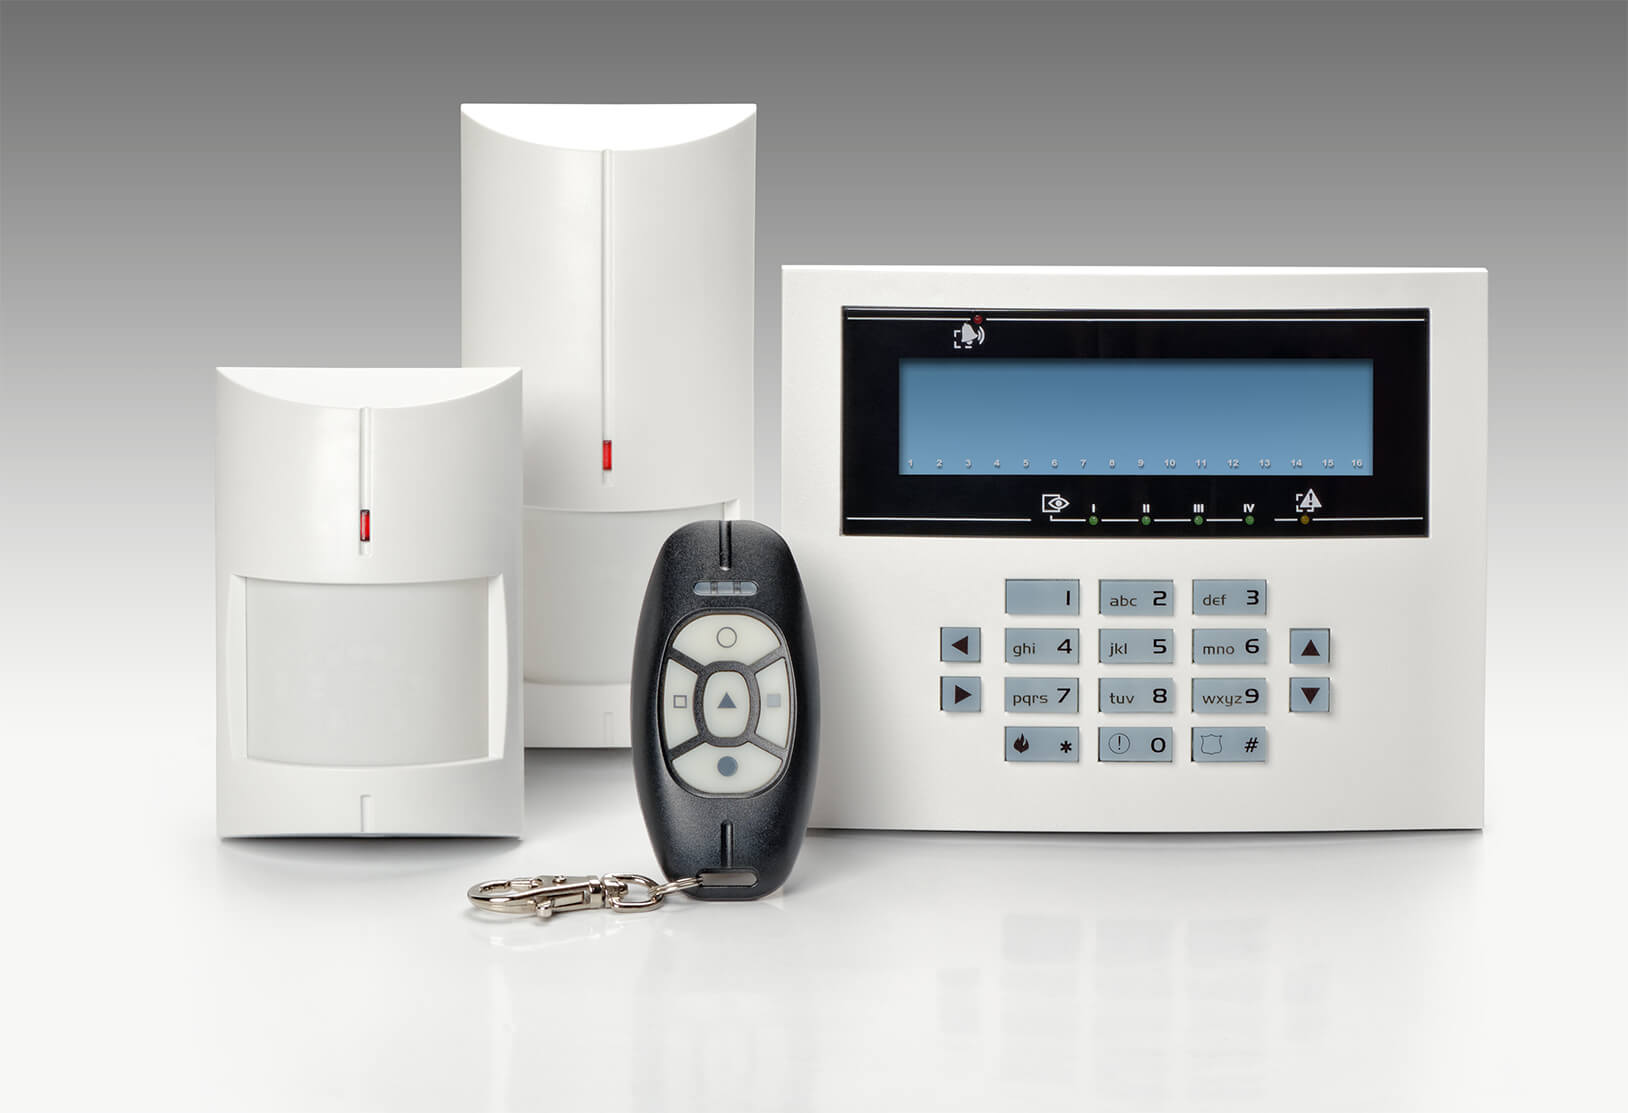 Commercial Burglar Alarms For Business in Lambeth SW16  - Local Lambeth SW16 burglar alarm company.Call 02078872244 - Dedicated to Safety & Security. Companies, shops and homes ..